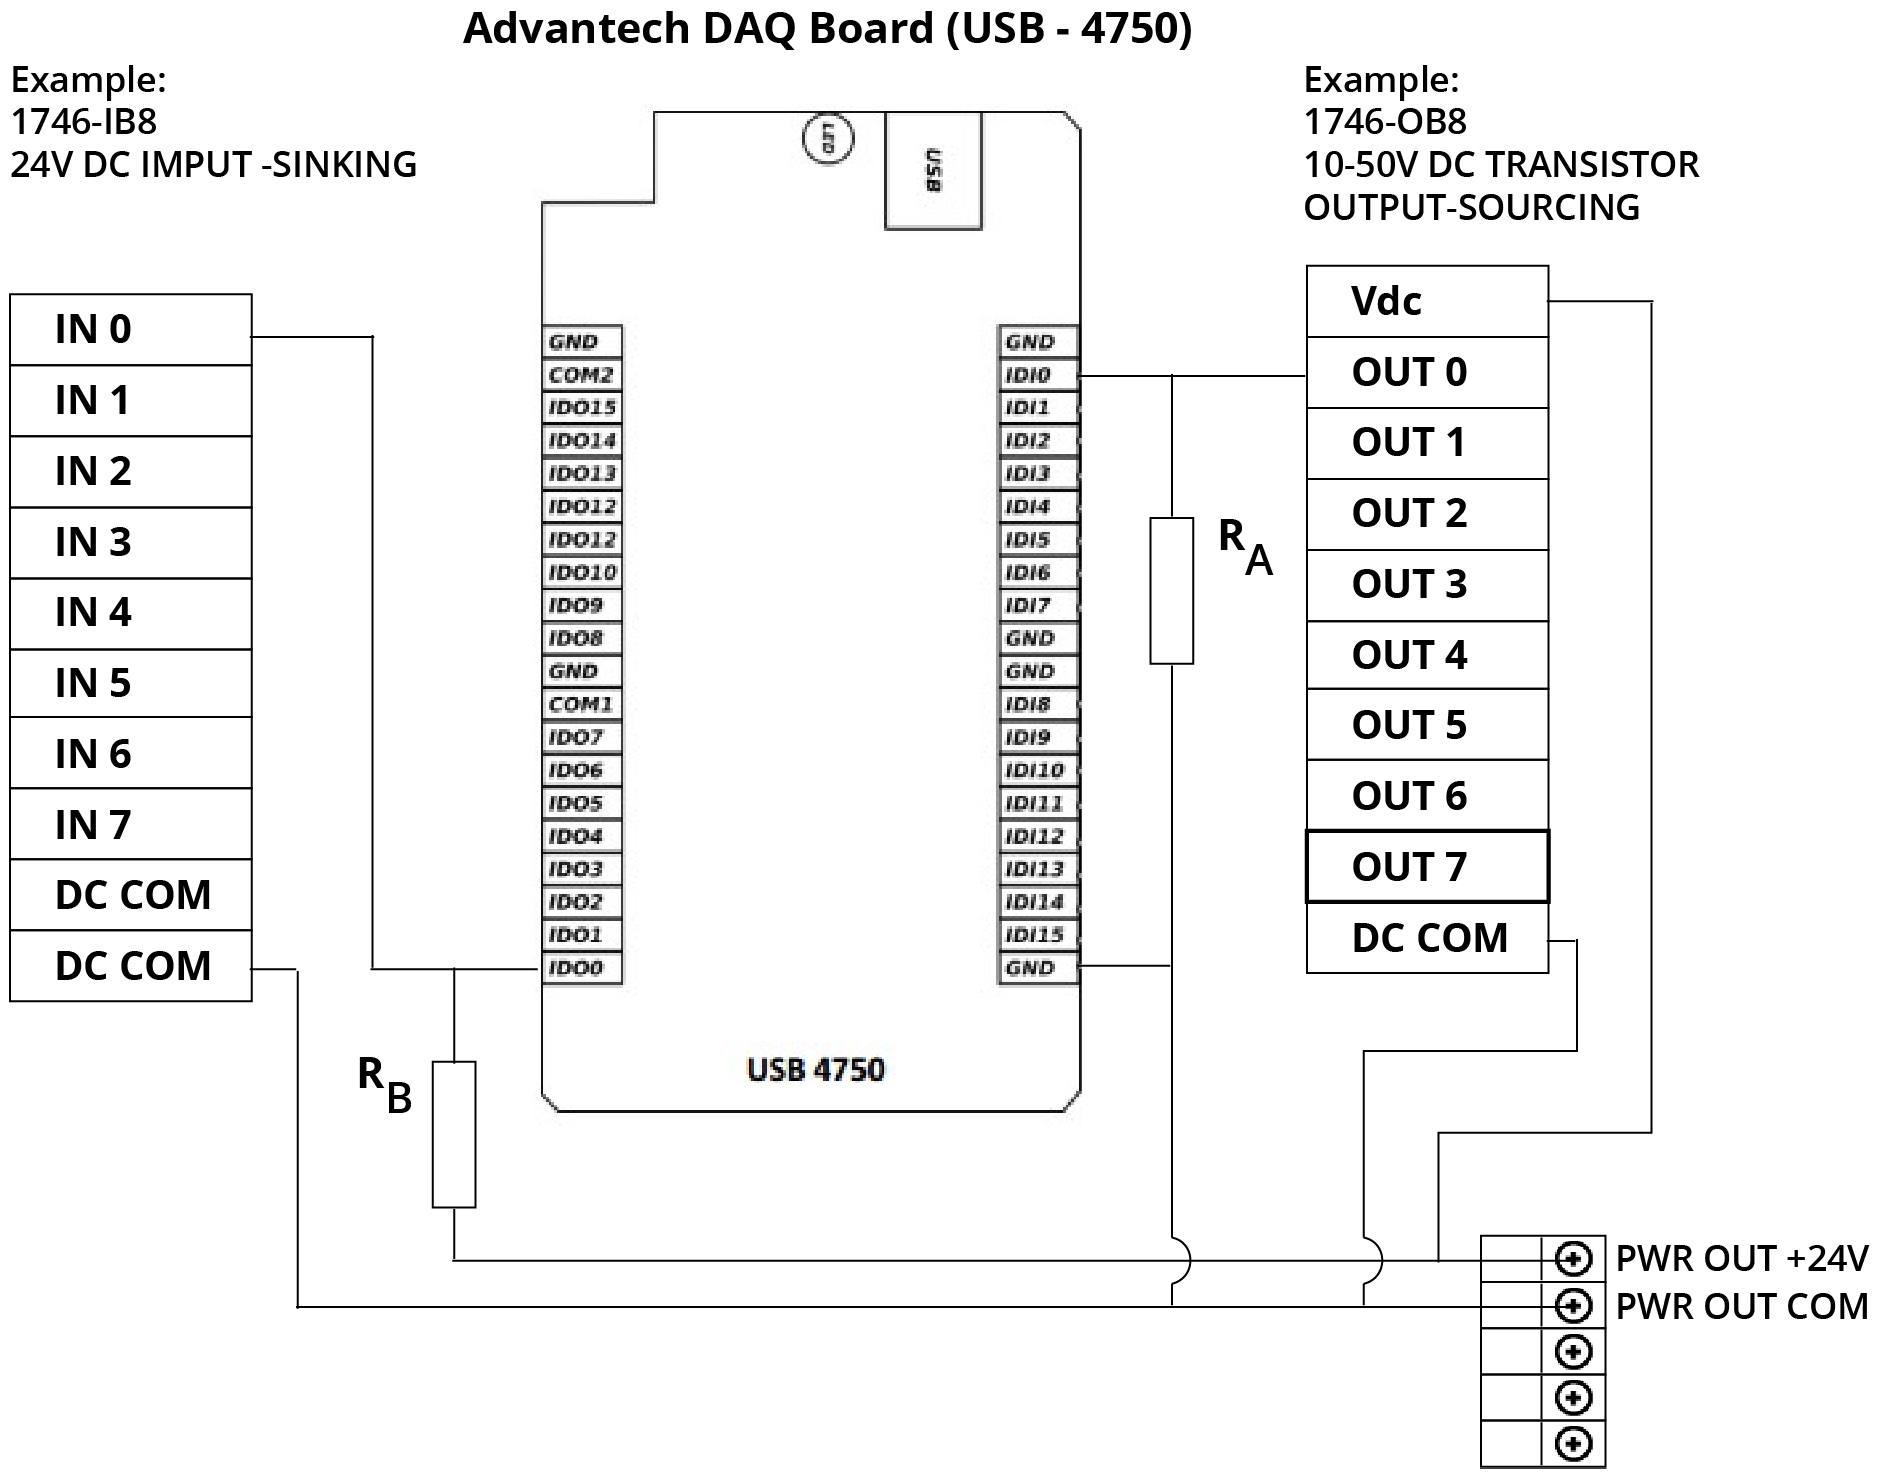 hight resolution of i o wiring diagram trusted wiring diagram dc s logic diagram plc i o diagram